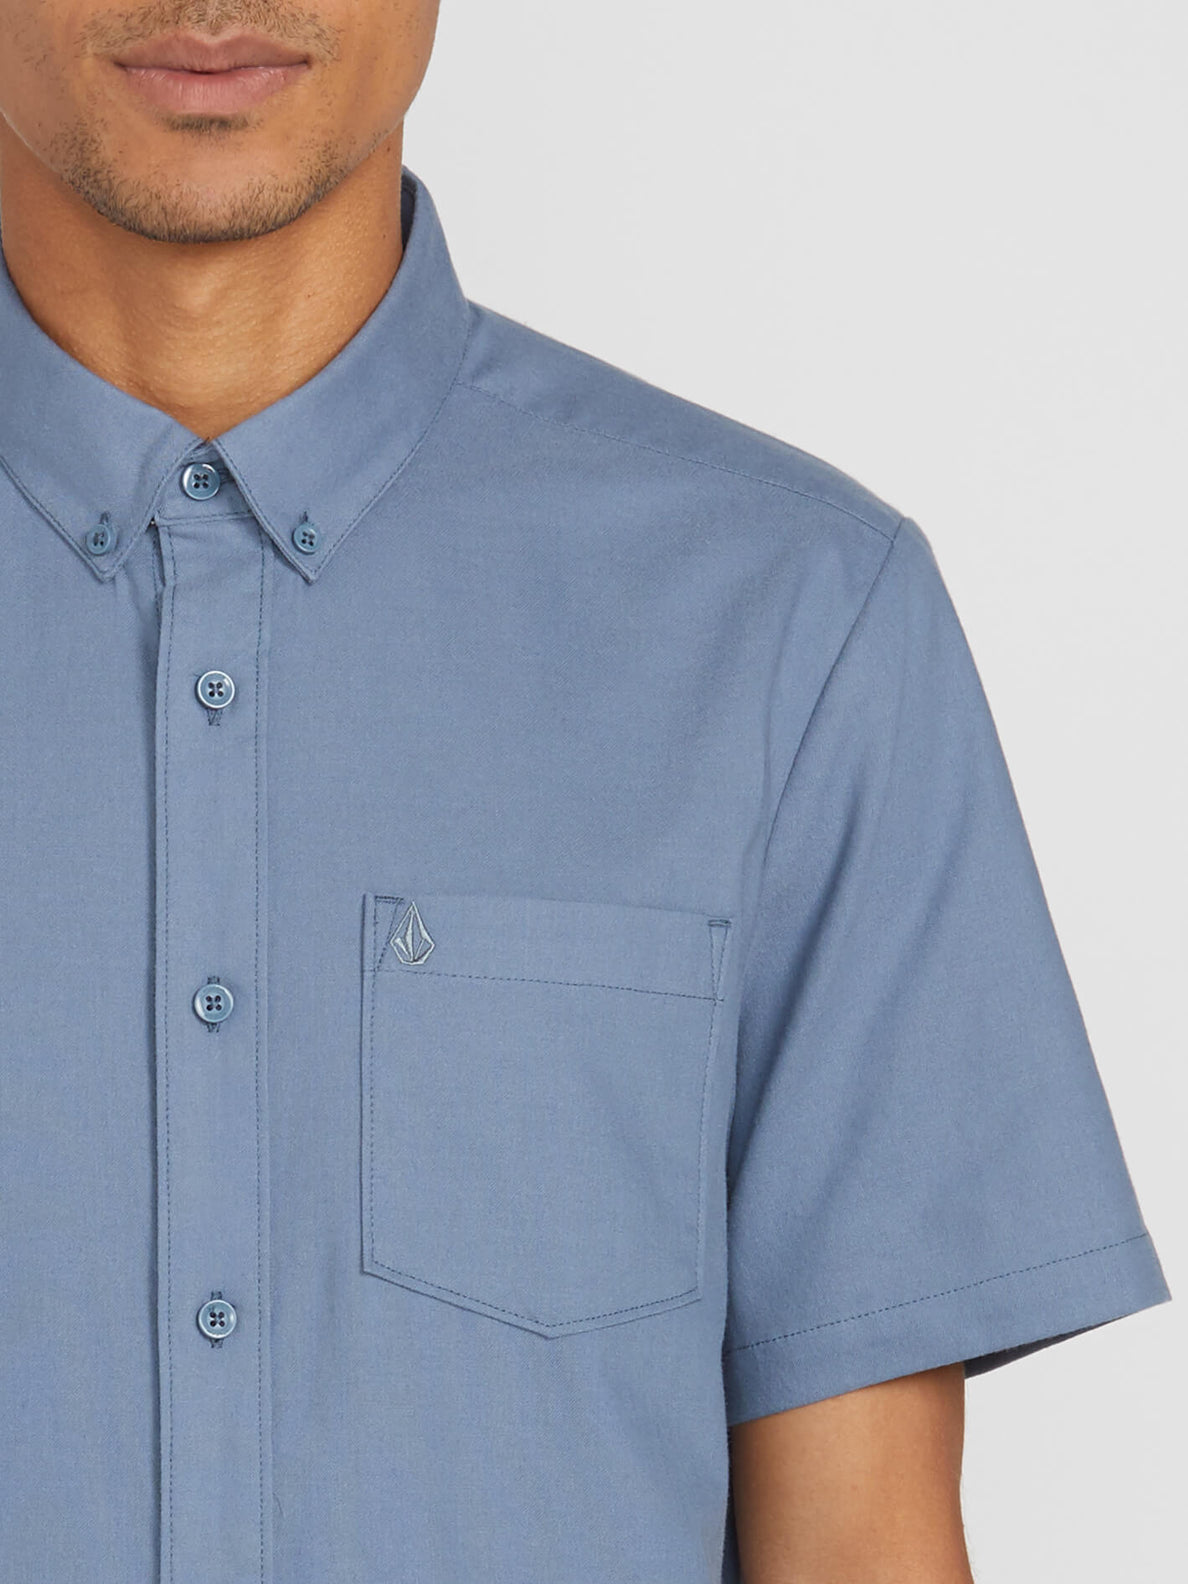 Everett Oxford Short Sleeve - Stormy Blue (A0411801_STB) [1]